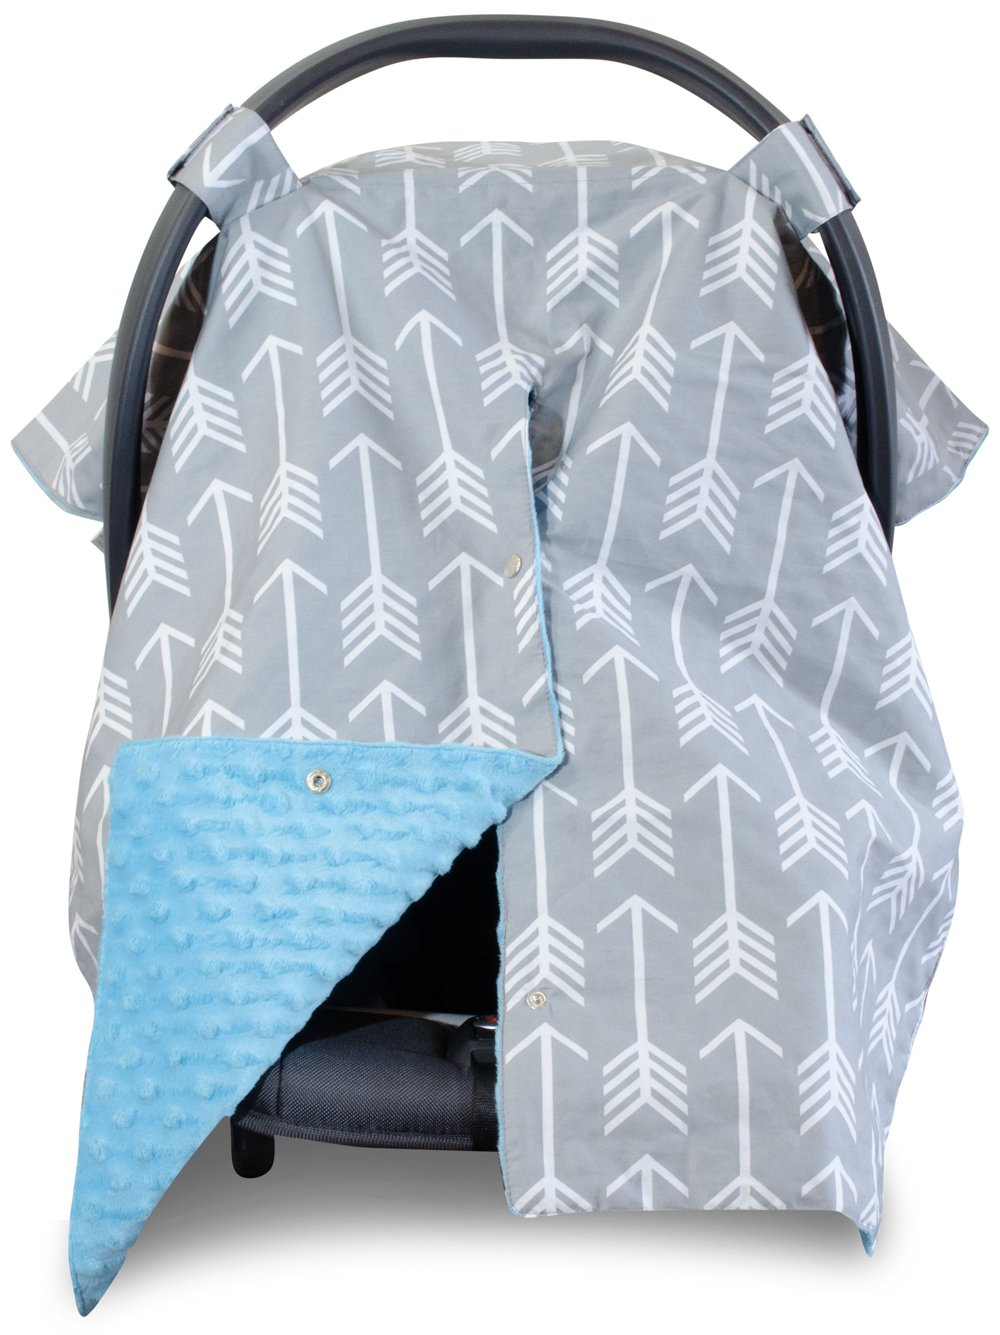 Kids N' Such 2 in 1 Car Seat Canopy Cover with Peekaboo Opening Large Arrow Carseat Cover with Blue Dot Minky... by Kids N%27 Such